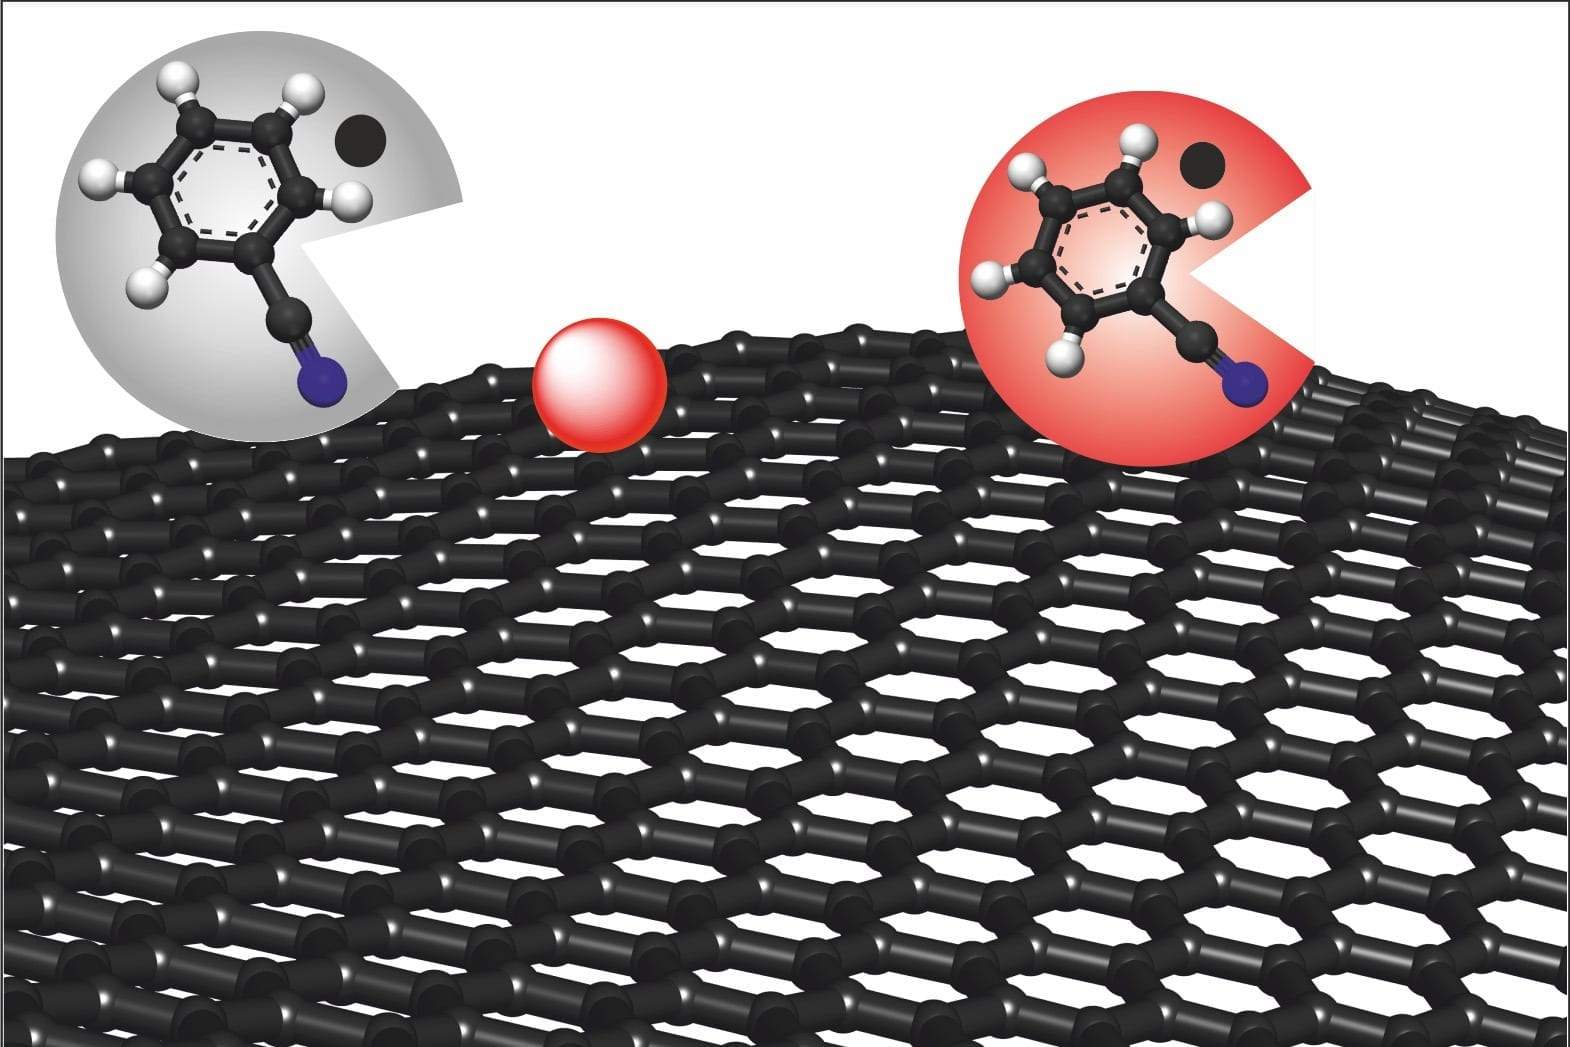 Chemical production of graphene, a single layer of carbon atoms. The solution benzonitrile (grey circle) removes the causes of possible defects and turns red, resulting in defect-free graphene (red circle). (Image: FAU/Philipp Vecera)